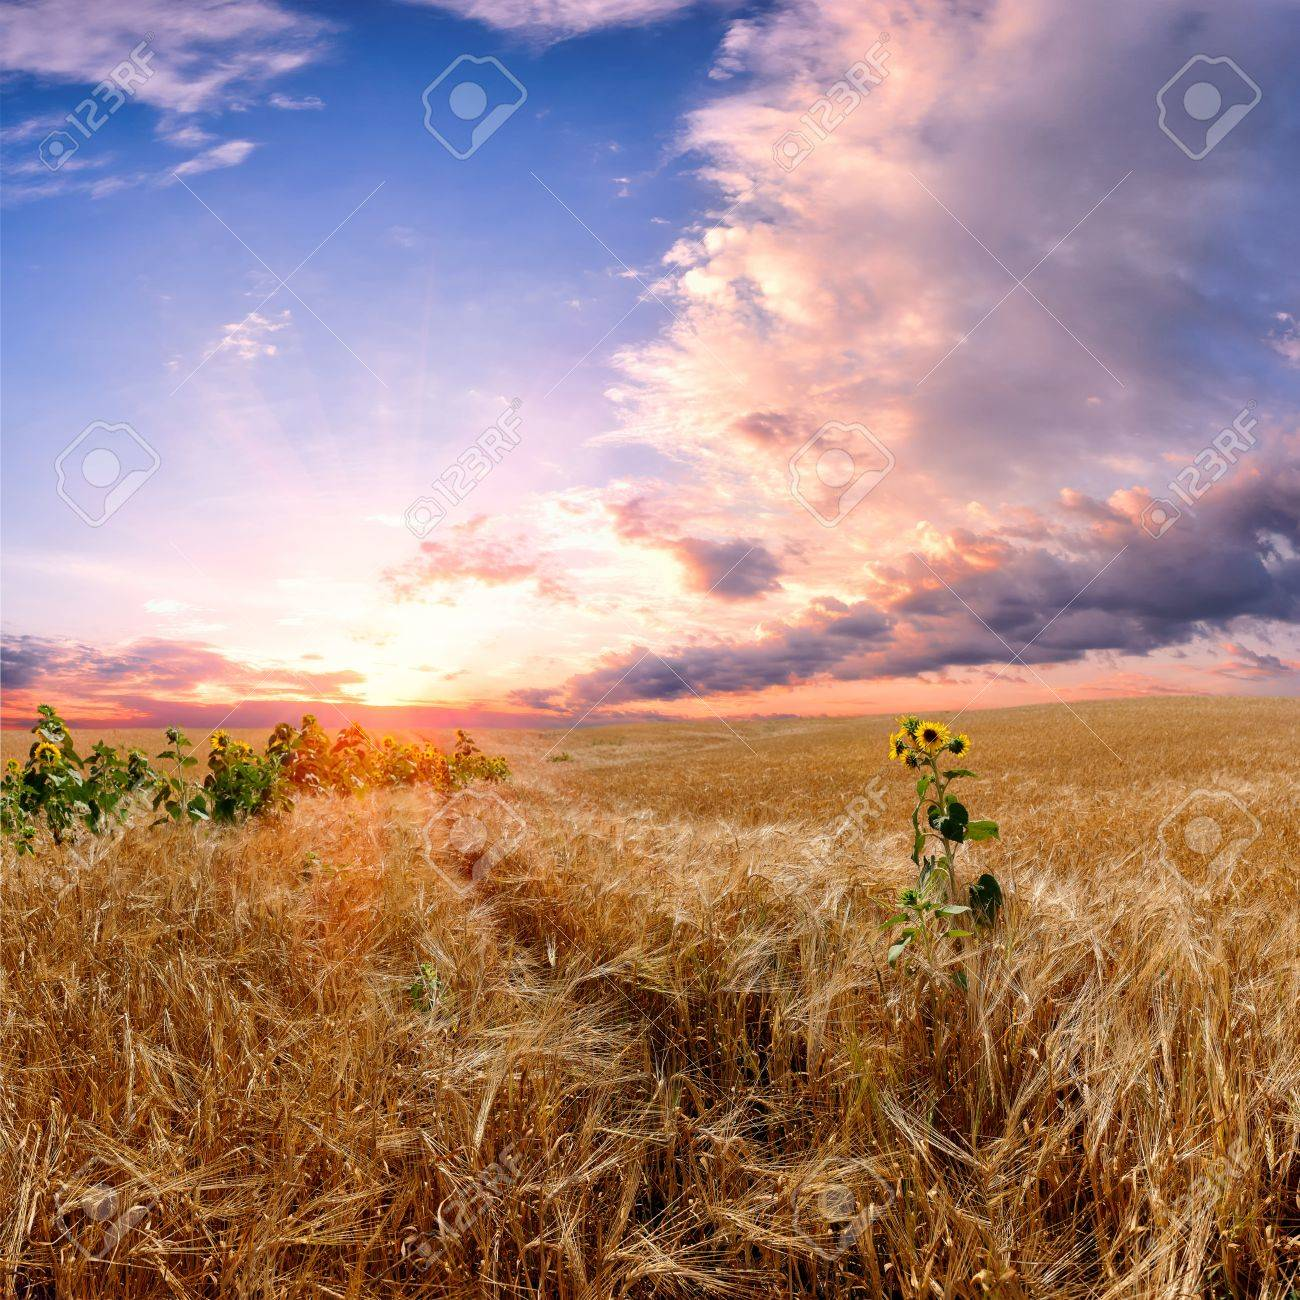 Landscape with wheat field, majestic colorful sunset and beautiful clouds in the sky Stock Photo - 14773753